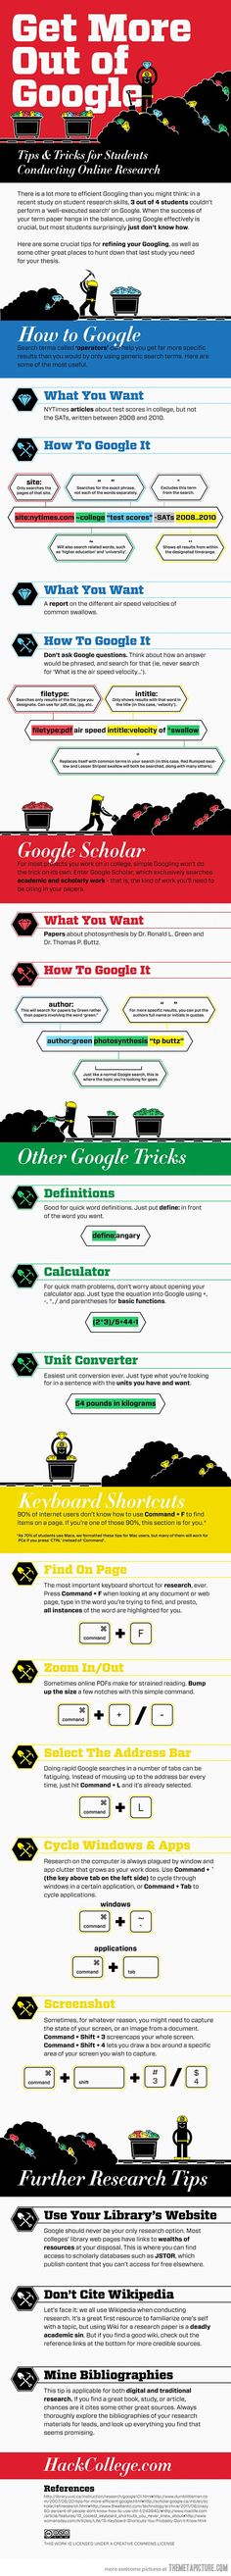 These are great tips to memorize! And as a reminder for self, the Command button is similiar to the Alt button on a PC. :)